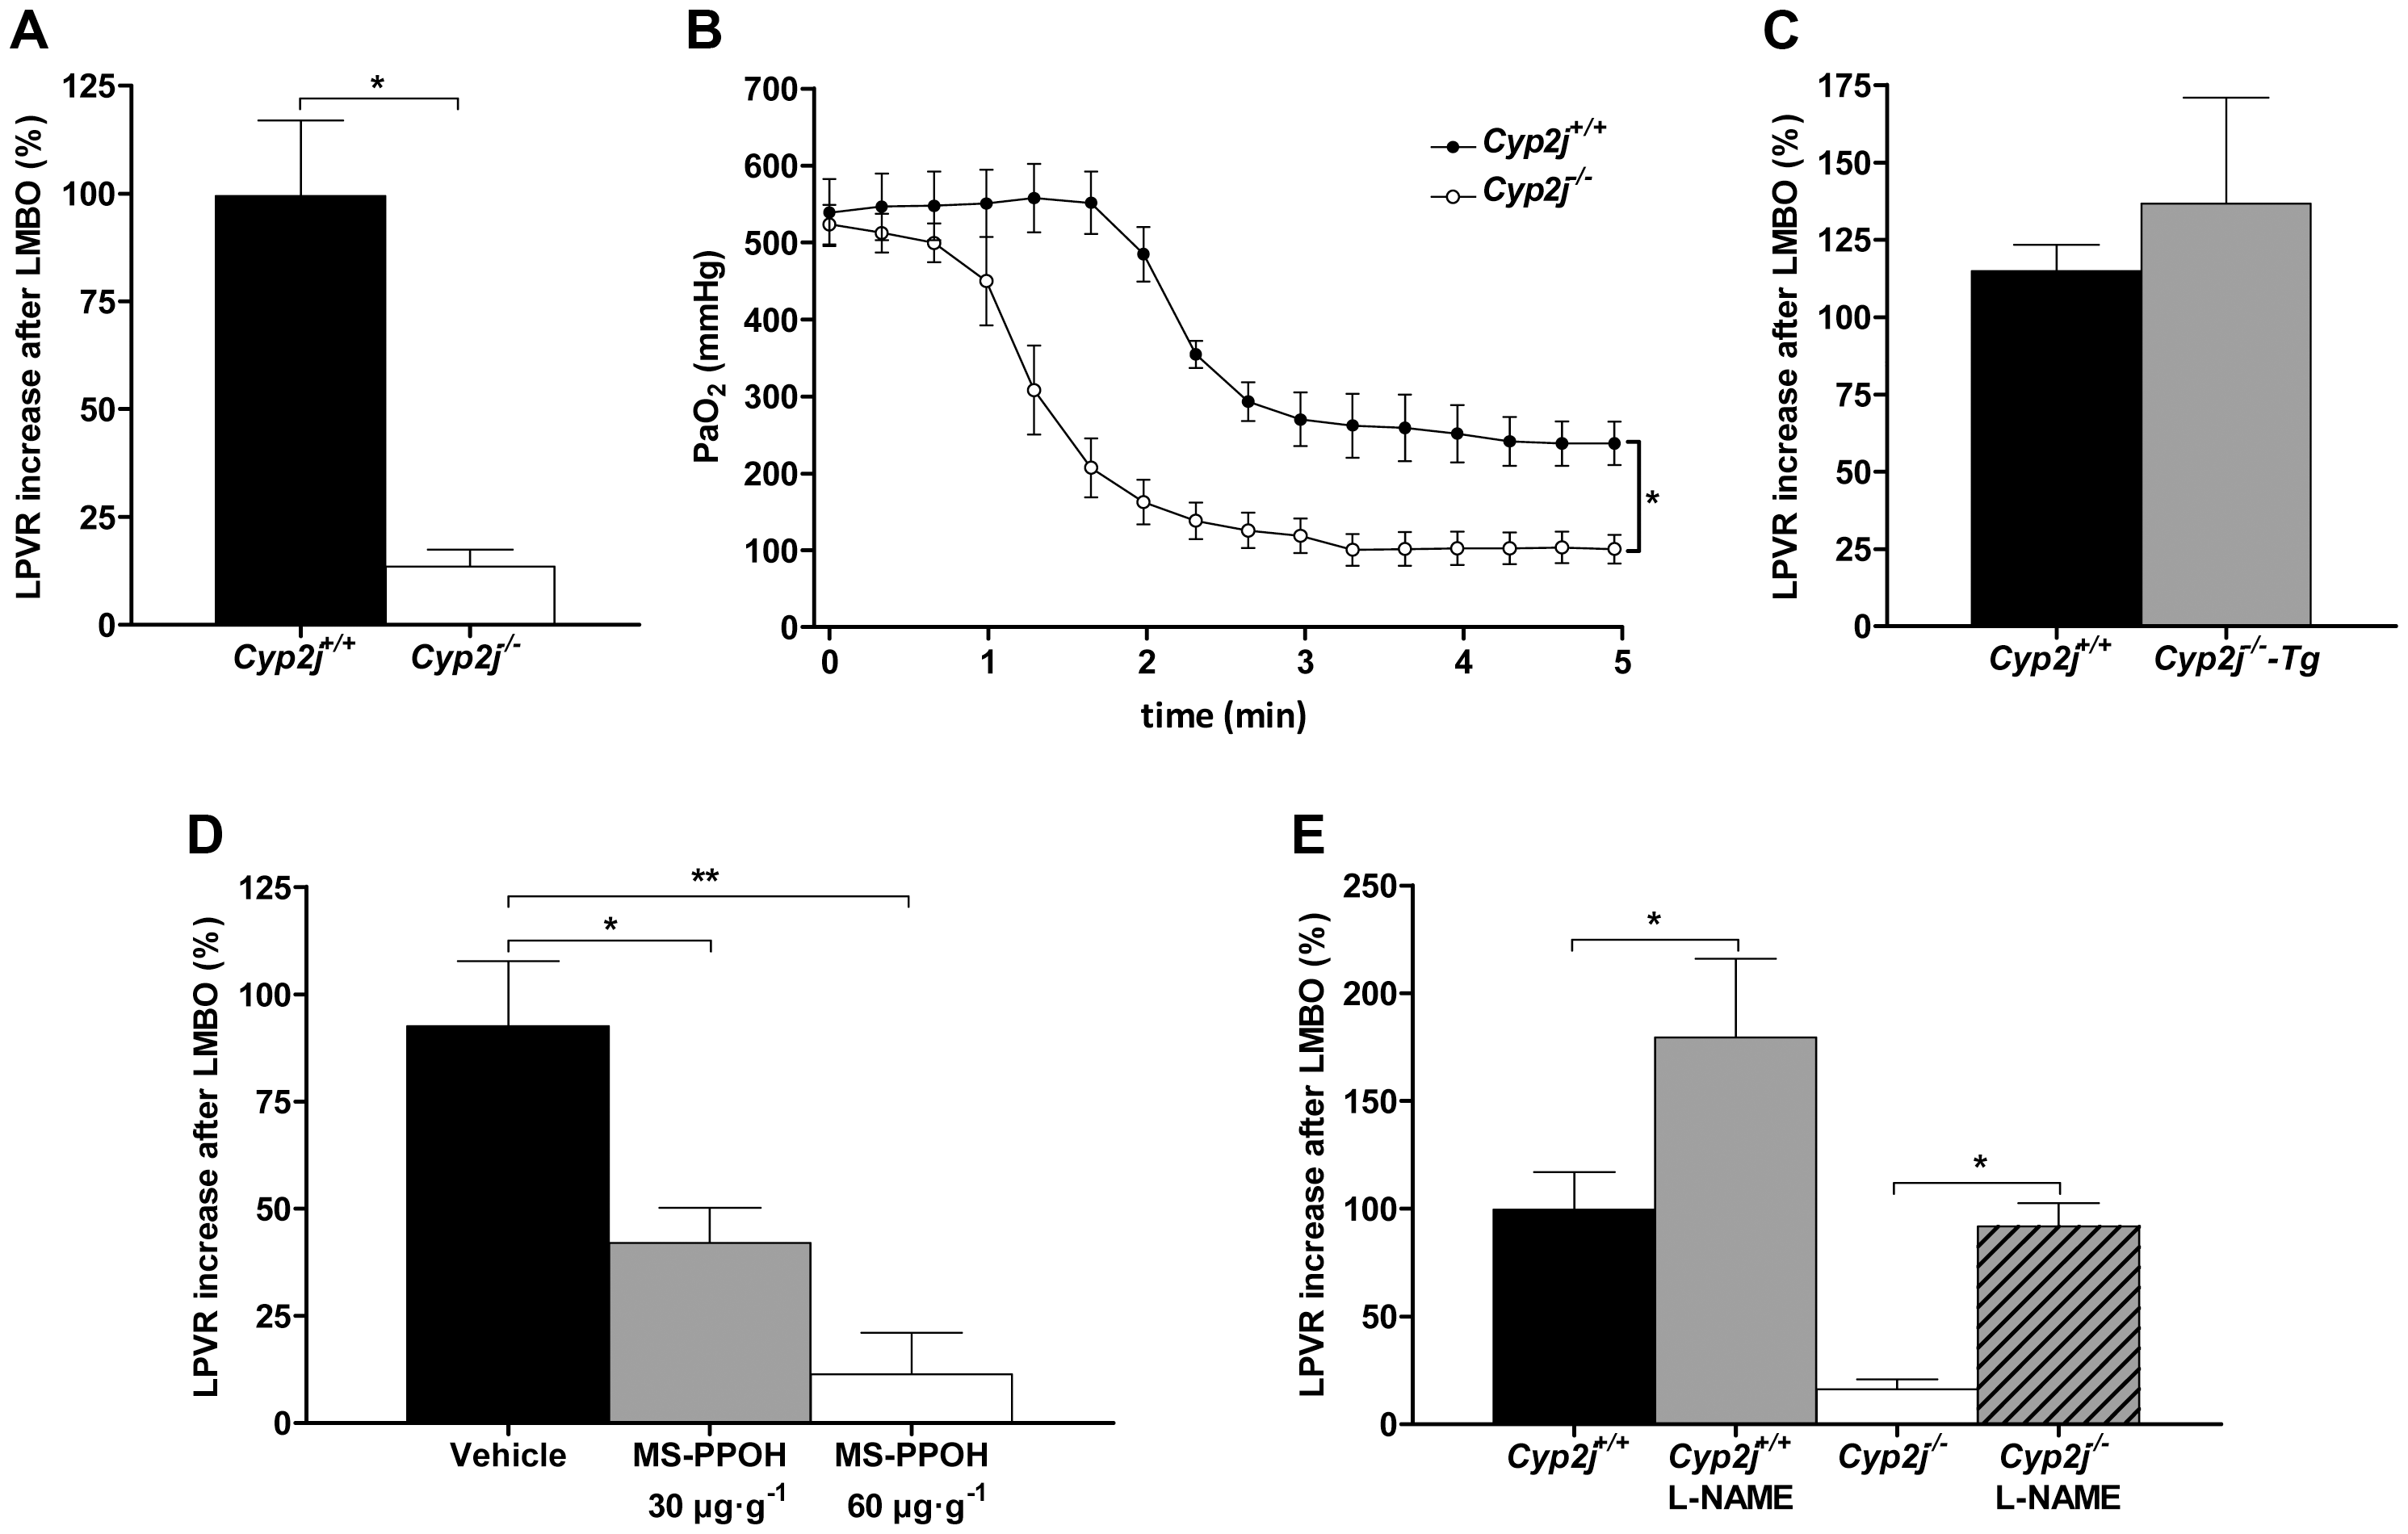 (A) Percent increase in left lung pulmonary vascular resistance (LPVR) in response to left mainstem bronchial occlusion (LMBO) in <i>Cyp2j<sup>+/+</sup></i> and <i>Cyp2j<sup>−/−</sup></i> mice (n=10 per group).